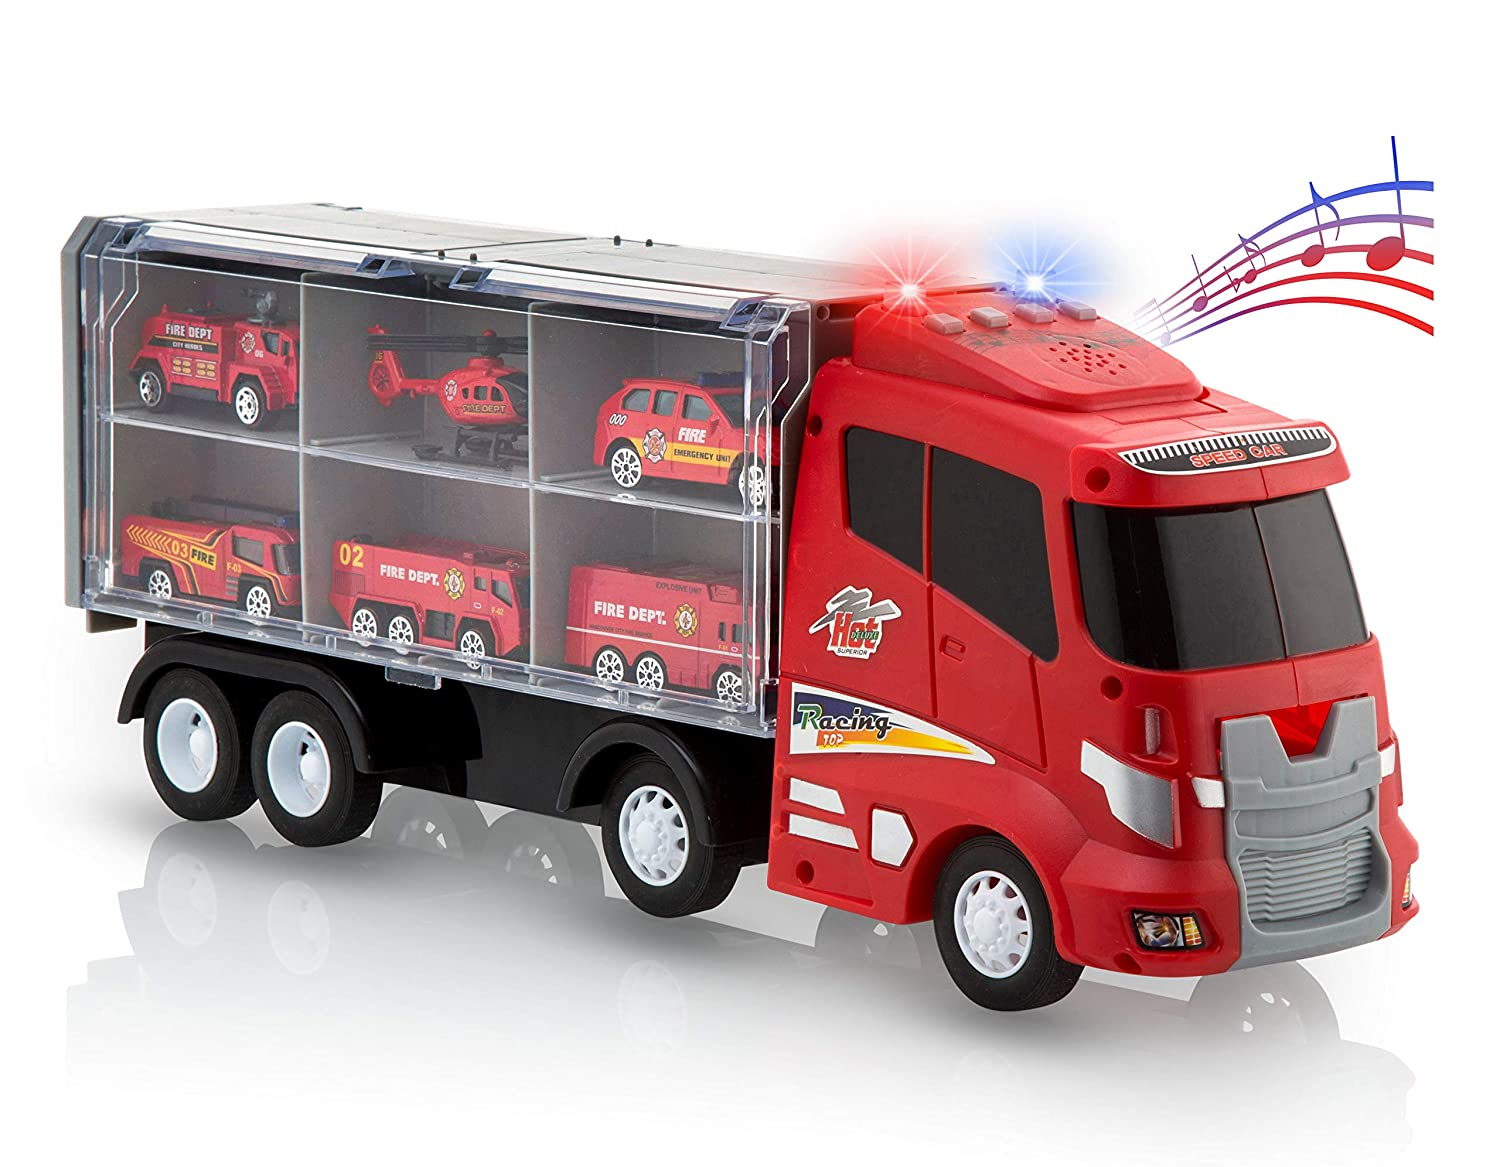 Advanced Play transport car carrier truck toys for boys and girls fire truck toy set includes 6 metal diecast play rescue vehicles and 12 slots with flashing lights sounds songs music for kids toddler